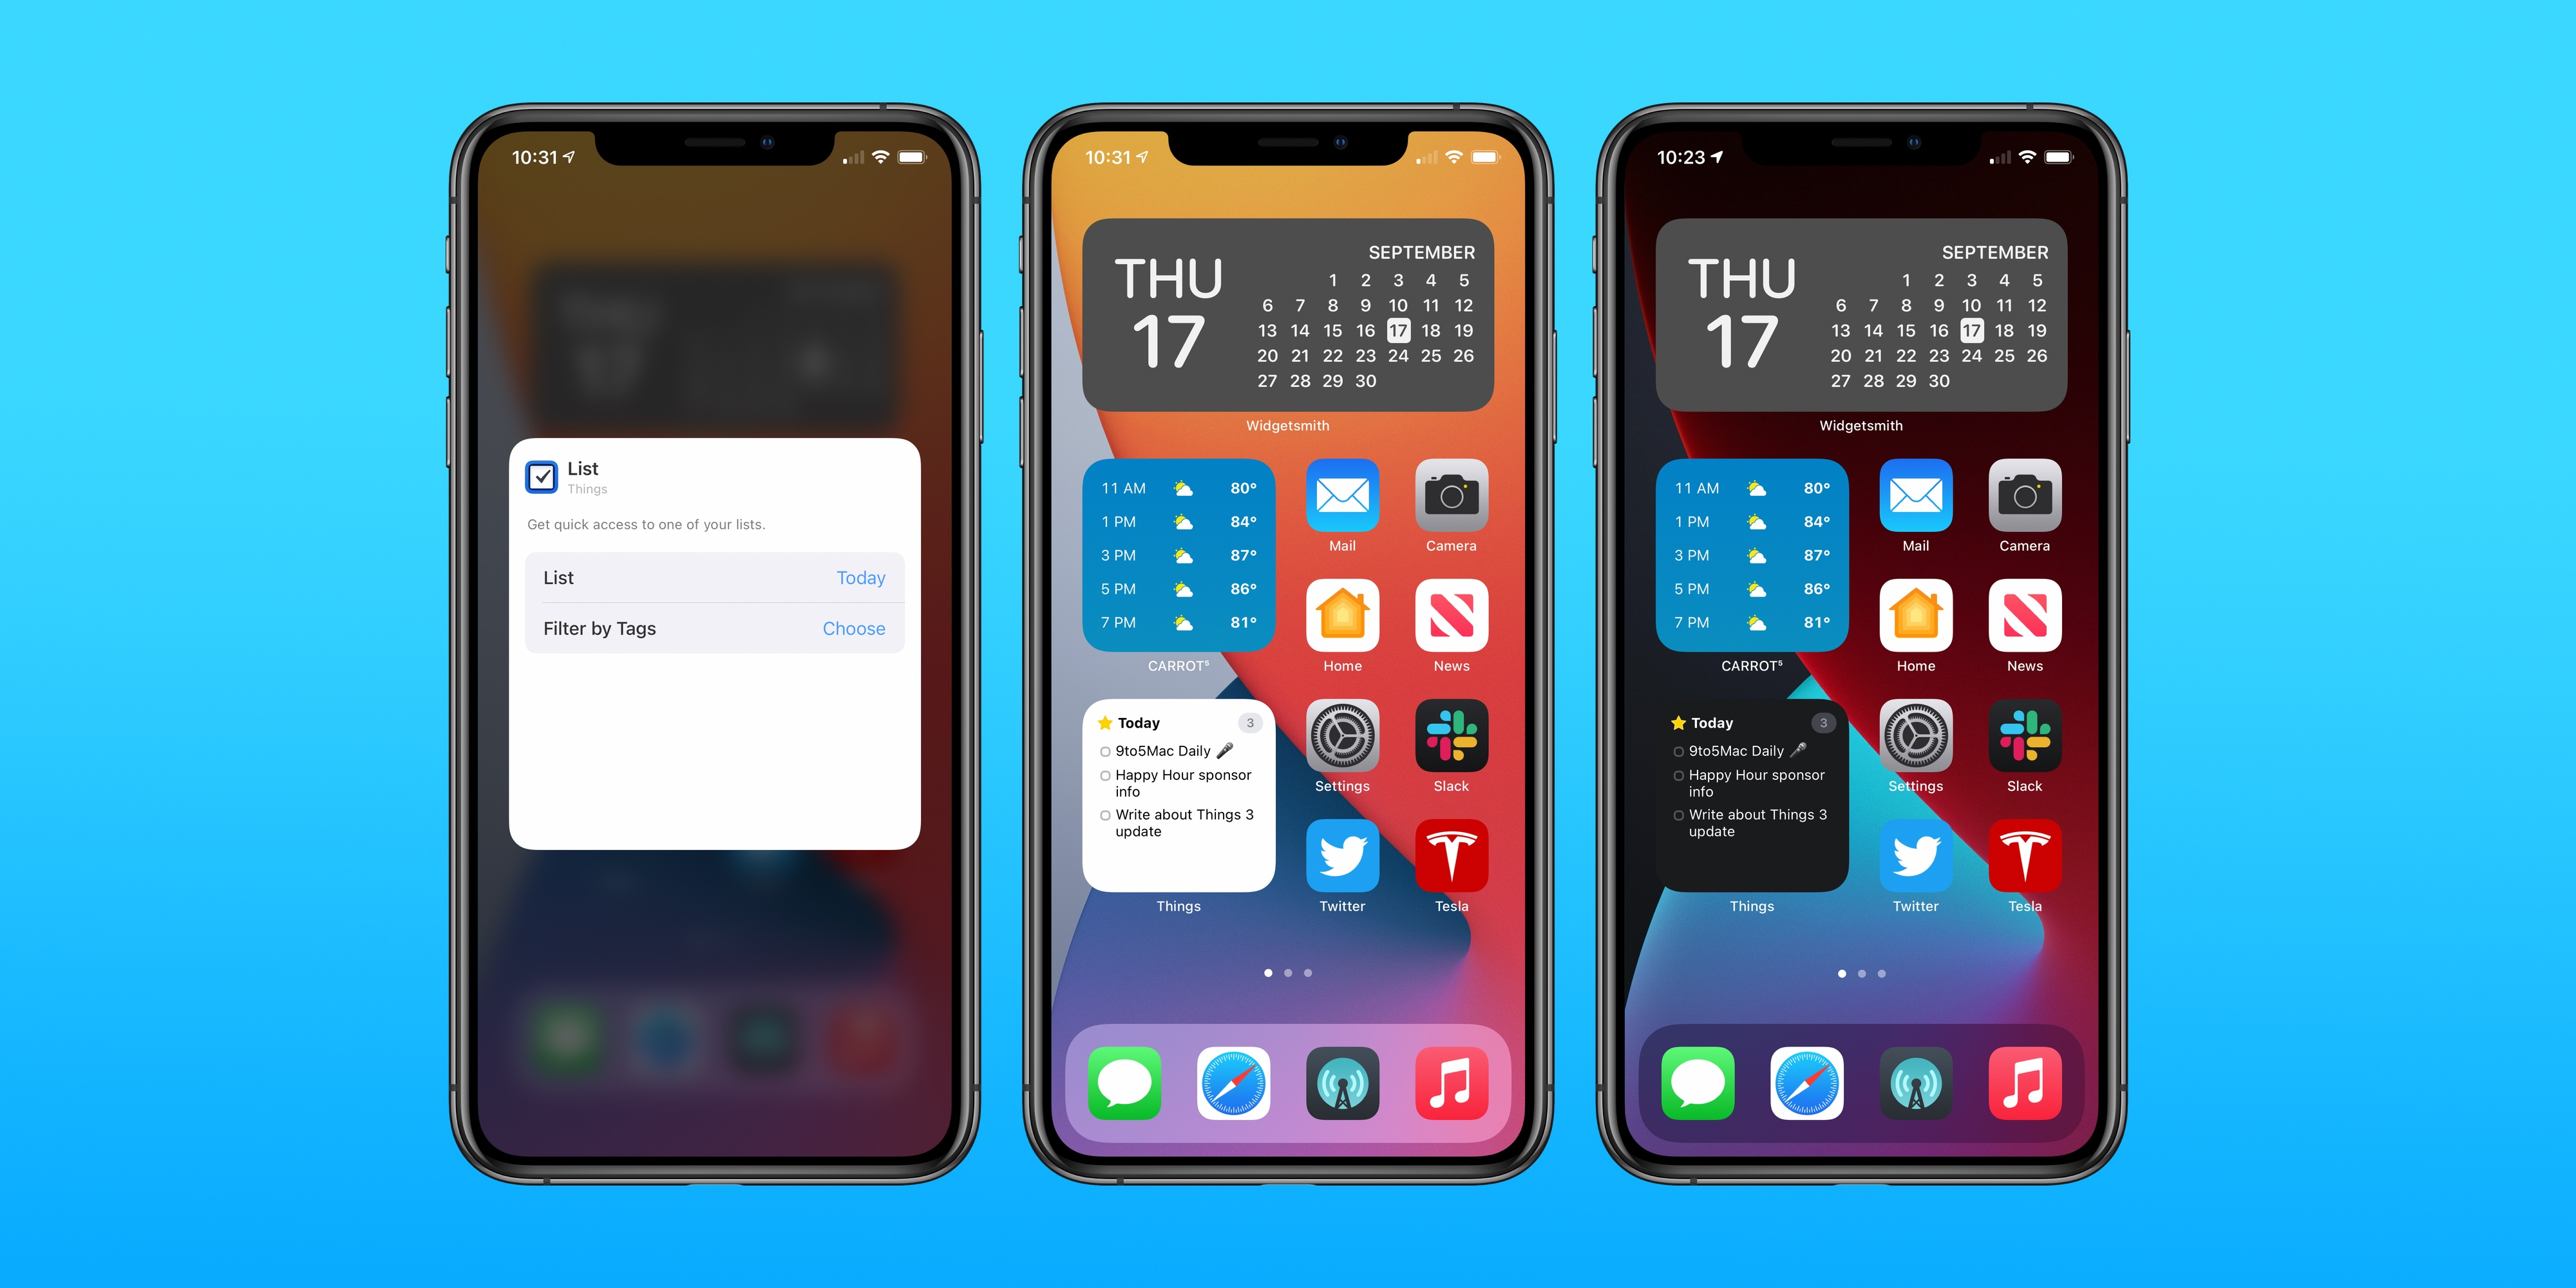 Things 3 task manager adds versatile home screen widgets new Apple Watch complications more – 9to5Mac